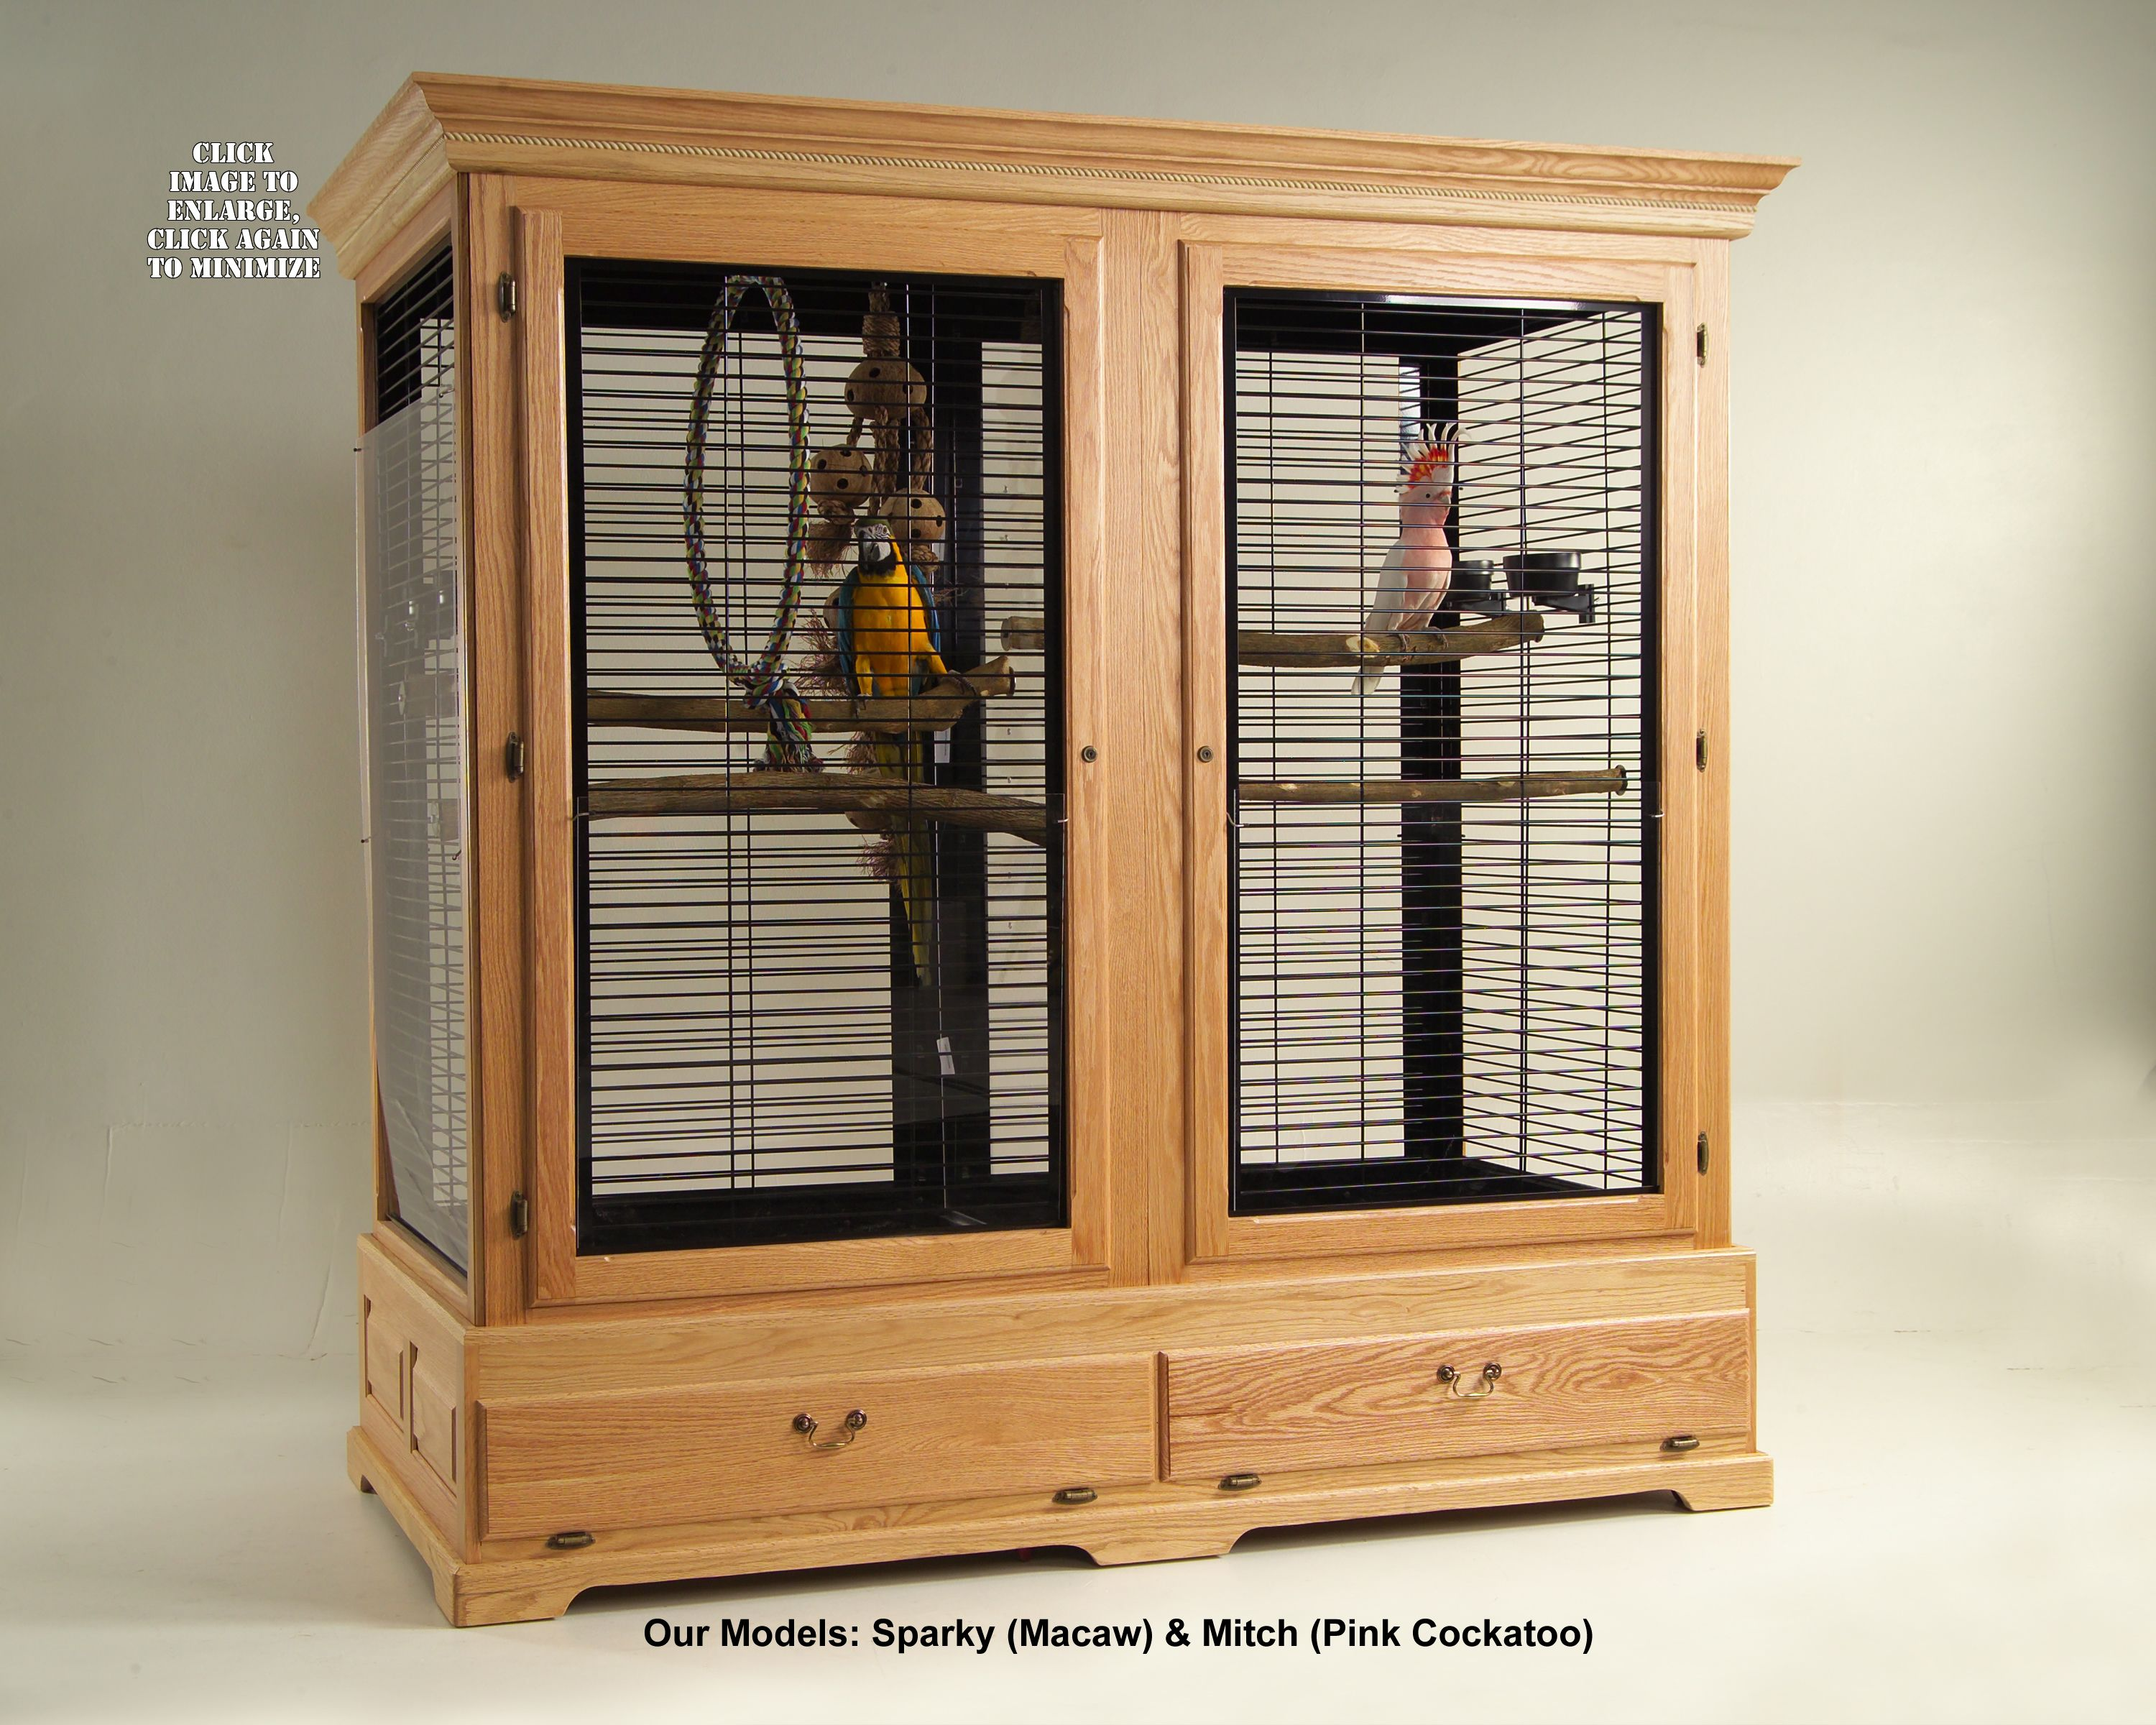 Bird Cages,Parrot Cages,Wooden Bird Cages, Avian Accents ...